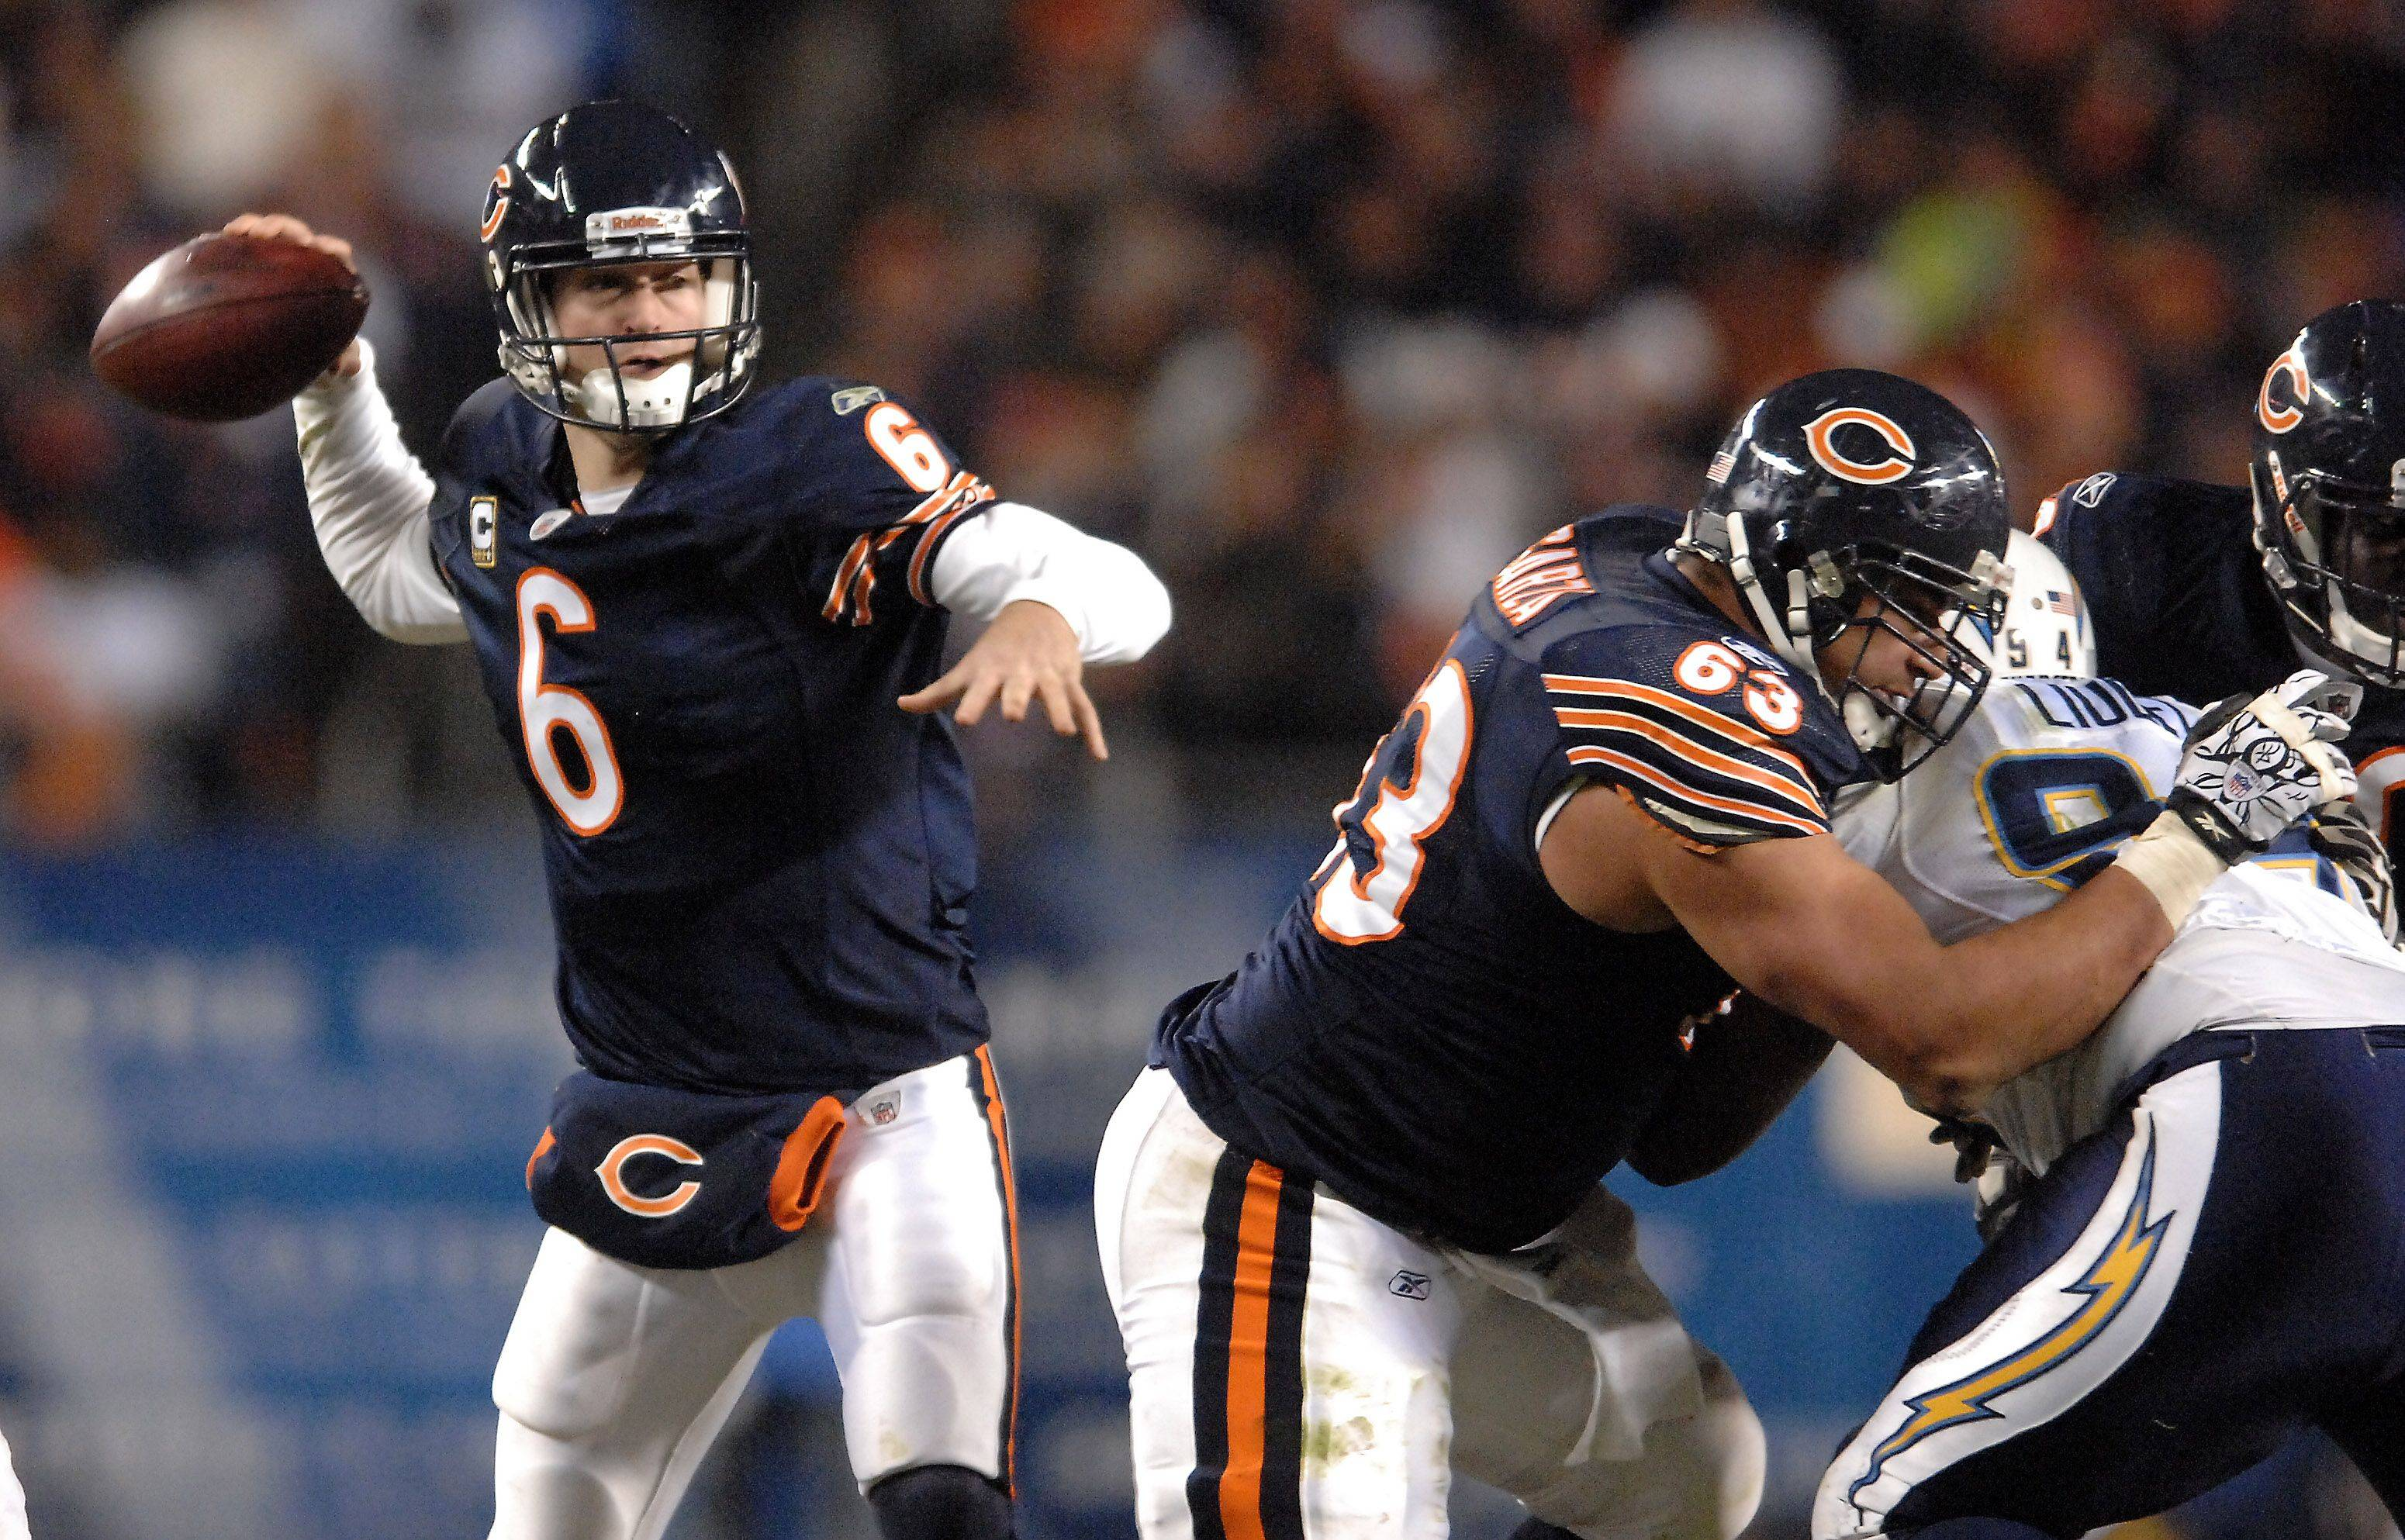 Cutler could be out for season